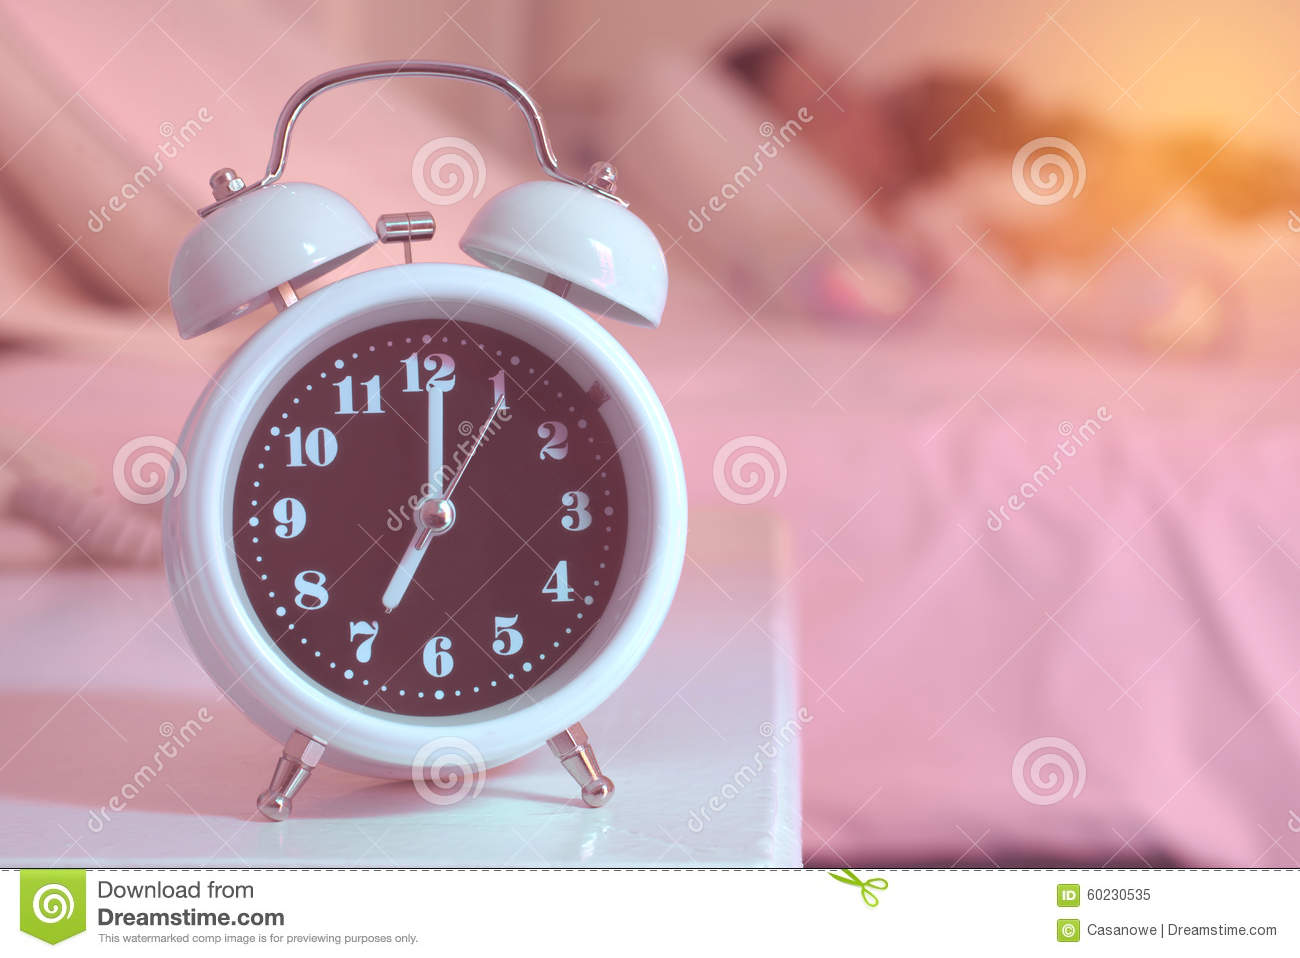 Alarm Clock On The Bed In Bedroom Stock Photo